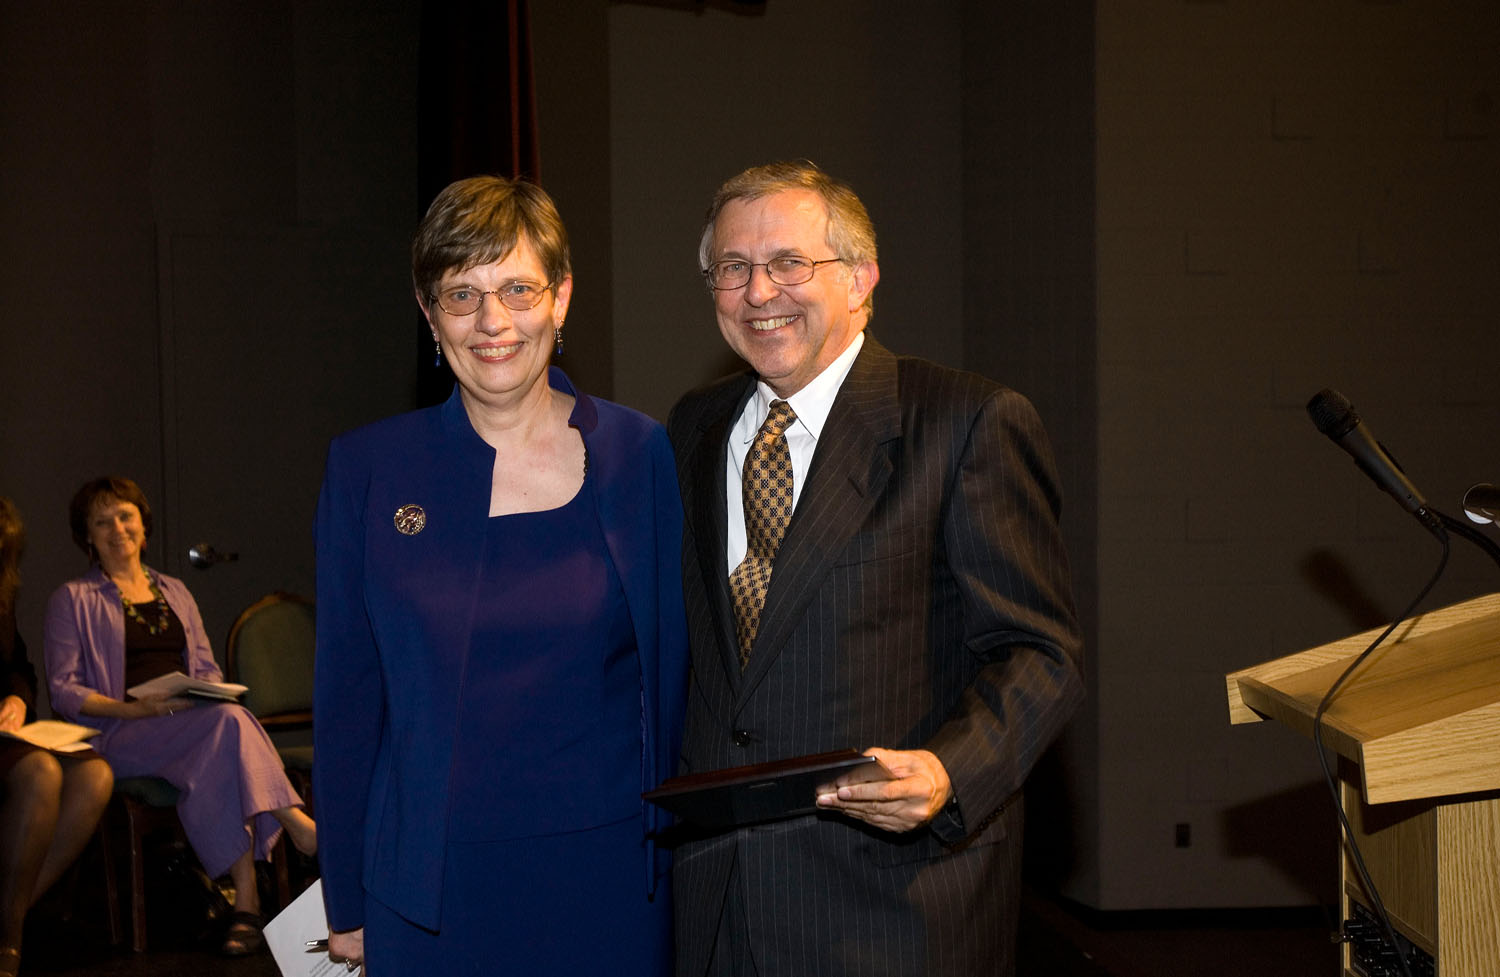 Chair of the Department of English Carolyn Rude (left) and Virginia Tech President Charles W. Steger at the first Steger Award presentations.